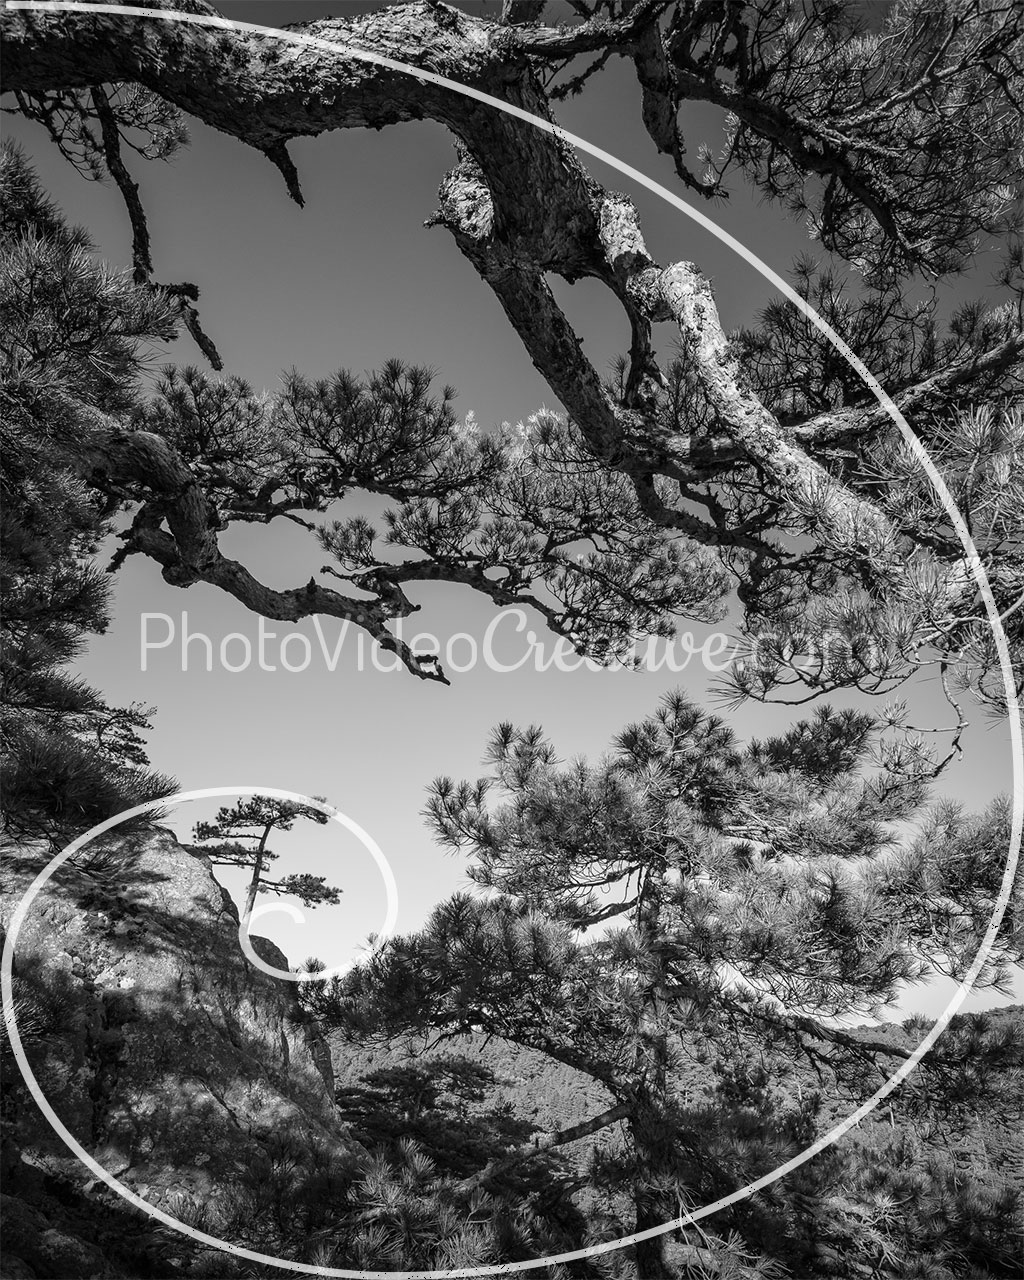 Photo cropping at 4:5 aspect ratio with golden spiral